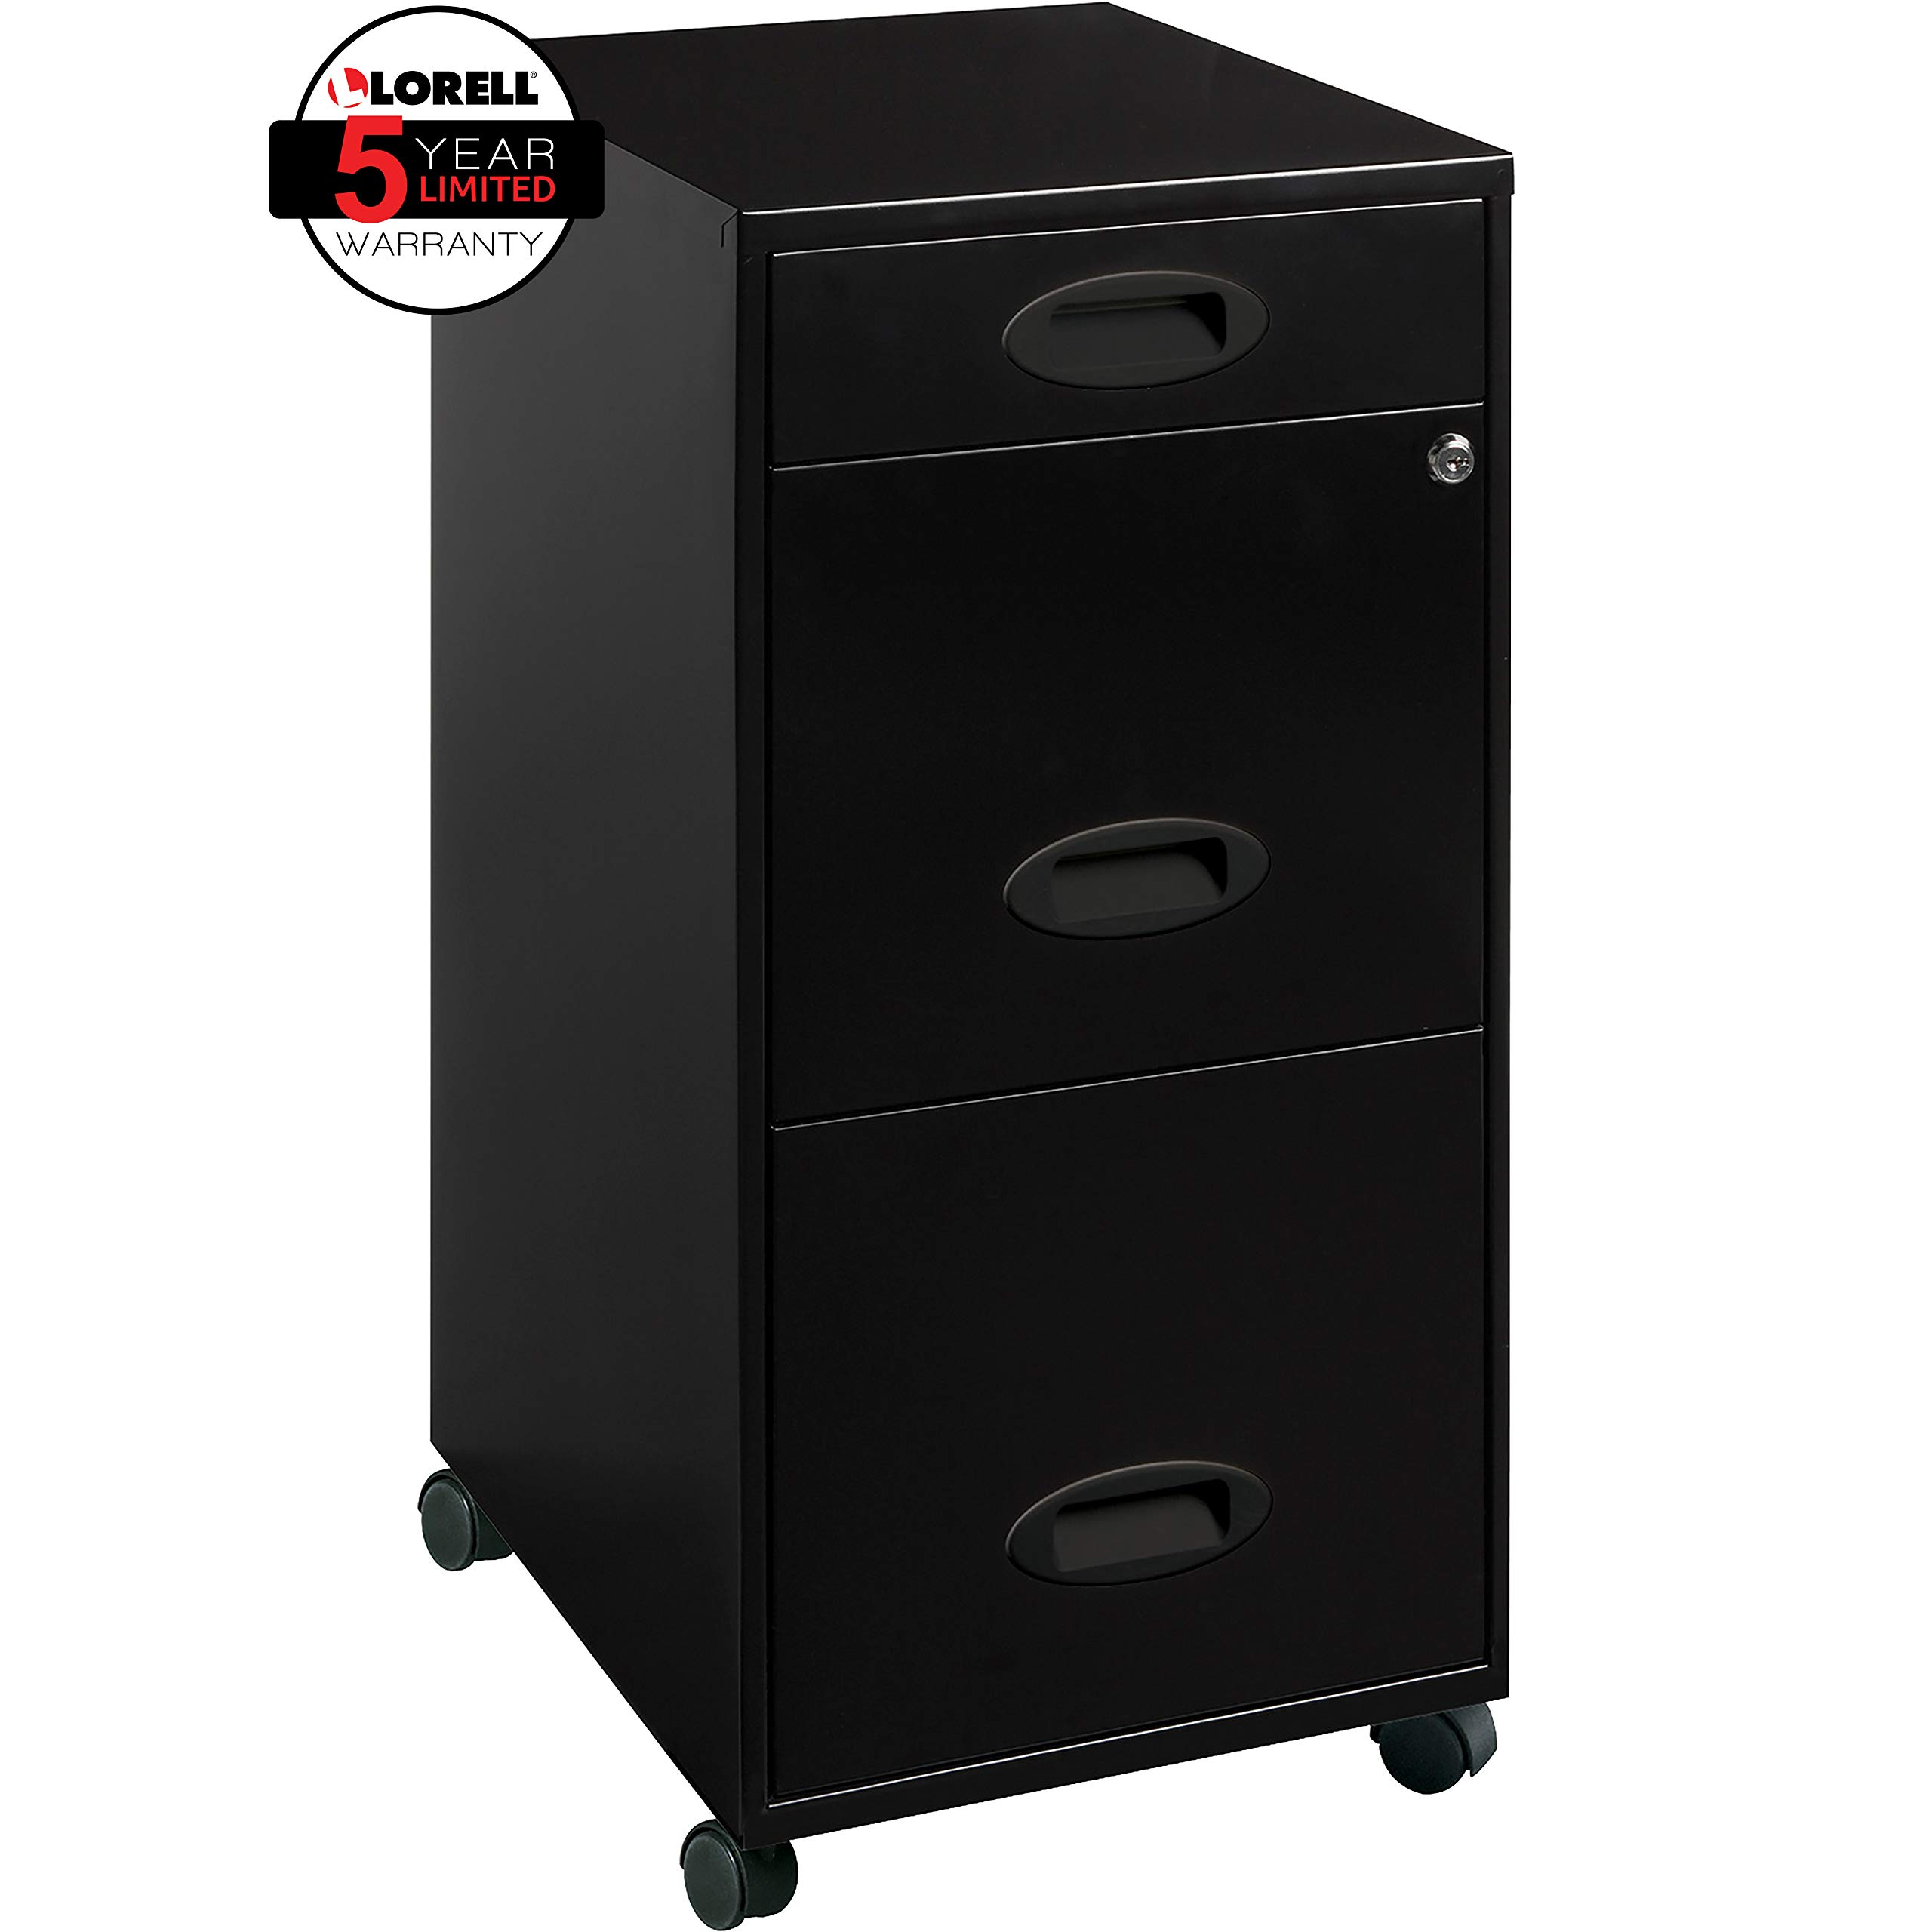 Lorell 17427 3-Drawer Mobile File Cabinet, 18'', 21.80'' L x 18.00'' W x 33.10'' H, Black by Lorell